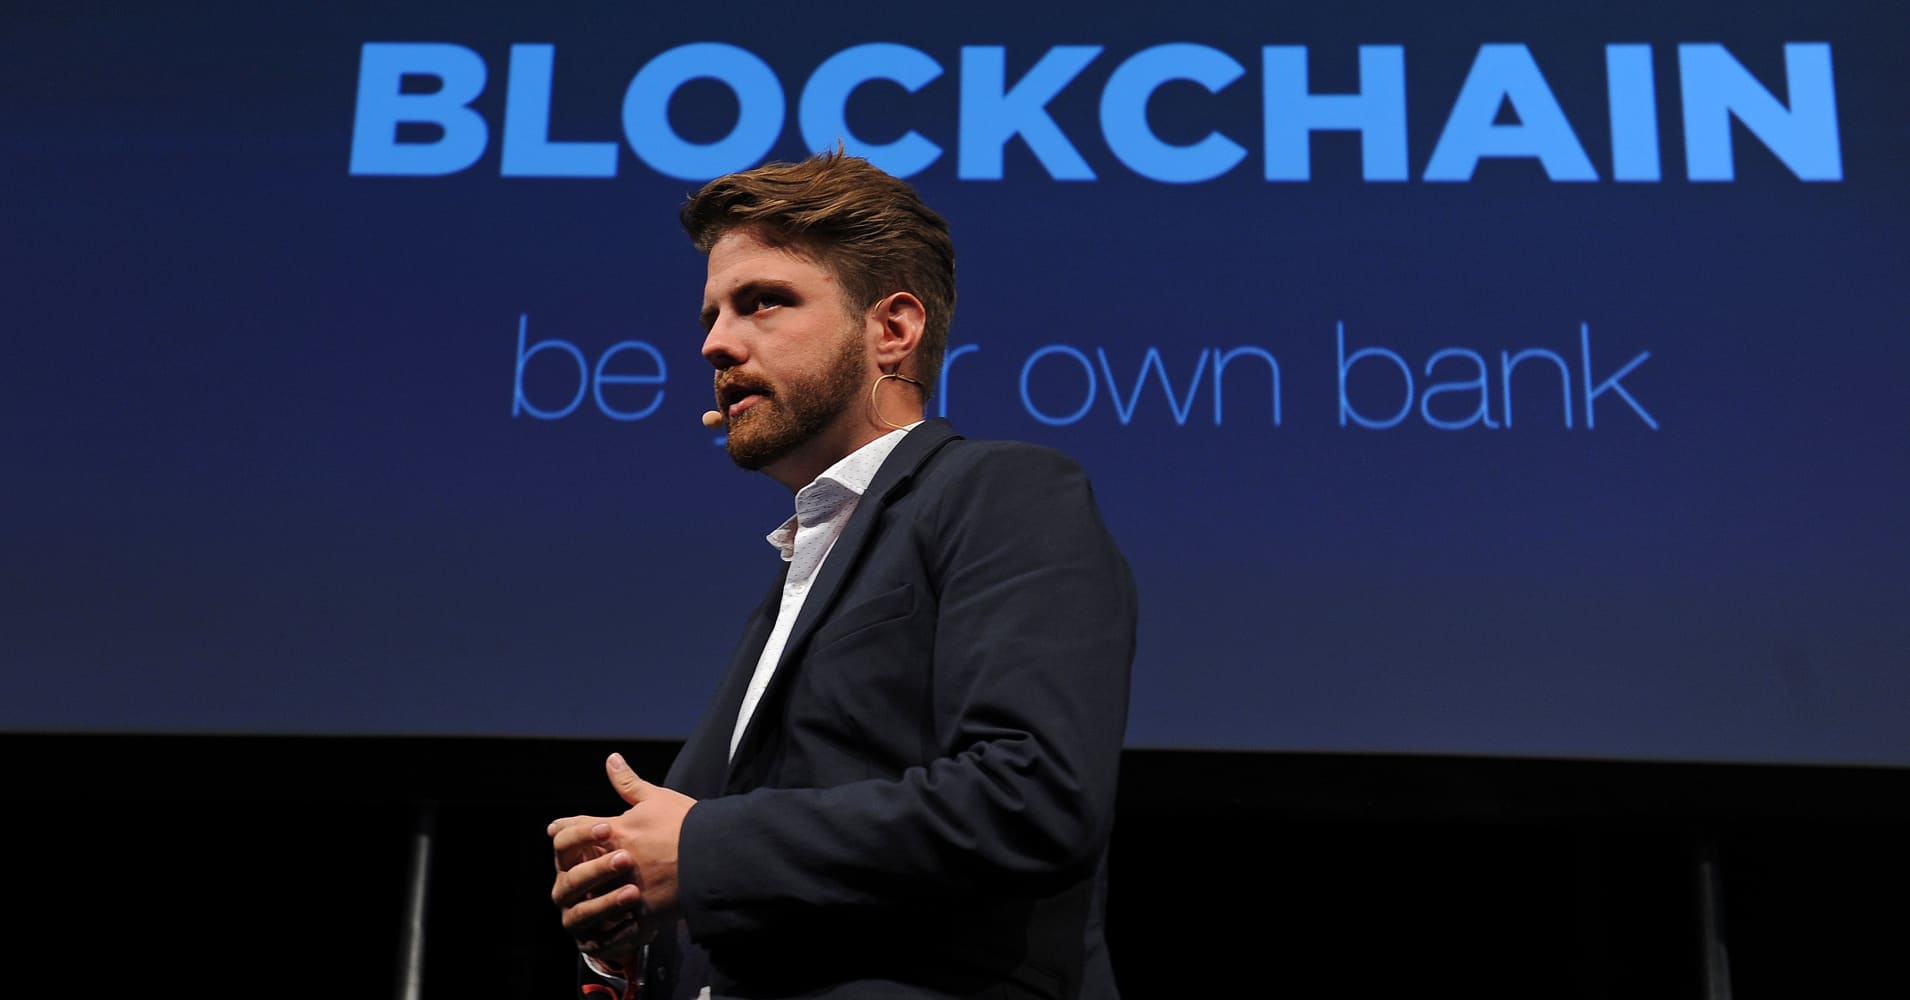 Blockchain technology is moving into the financial mainstream with IBM and seven European banks